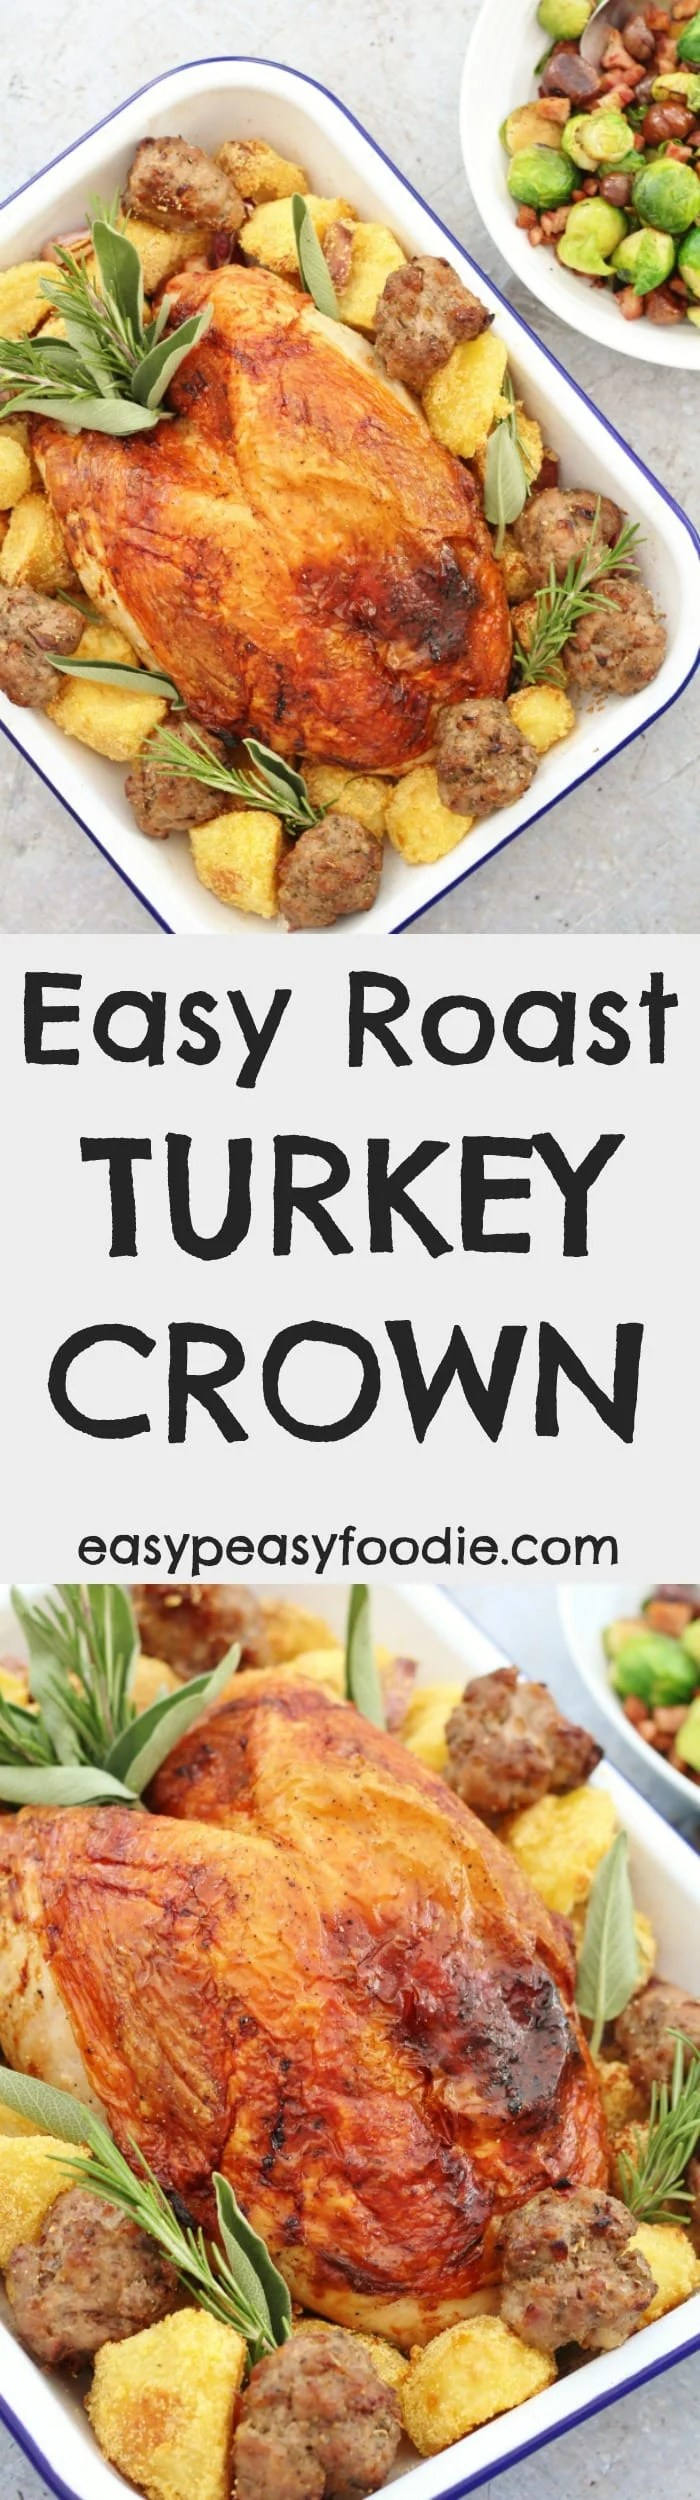 Make your life simple this Christmas and cook my Easy Roast Turkey Crown – all the delicious taste of a whole roast turkey, but less of the stress. Plus lots of tips on buying, defrosting and cooking a turkey crown and delicious ideas for your turkey leftovers! #turkey #turkeycrown #crown #turkeytips #roastturkey #roastturkeycrown #christmasdinner #christmaslunch #easychristmas #easypeasyfoodie #freefromgang #cookblogshare